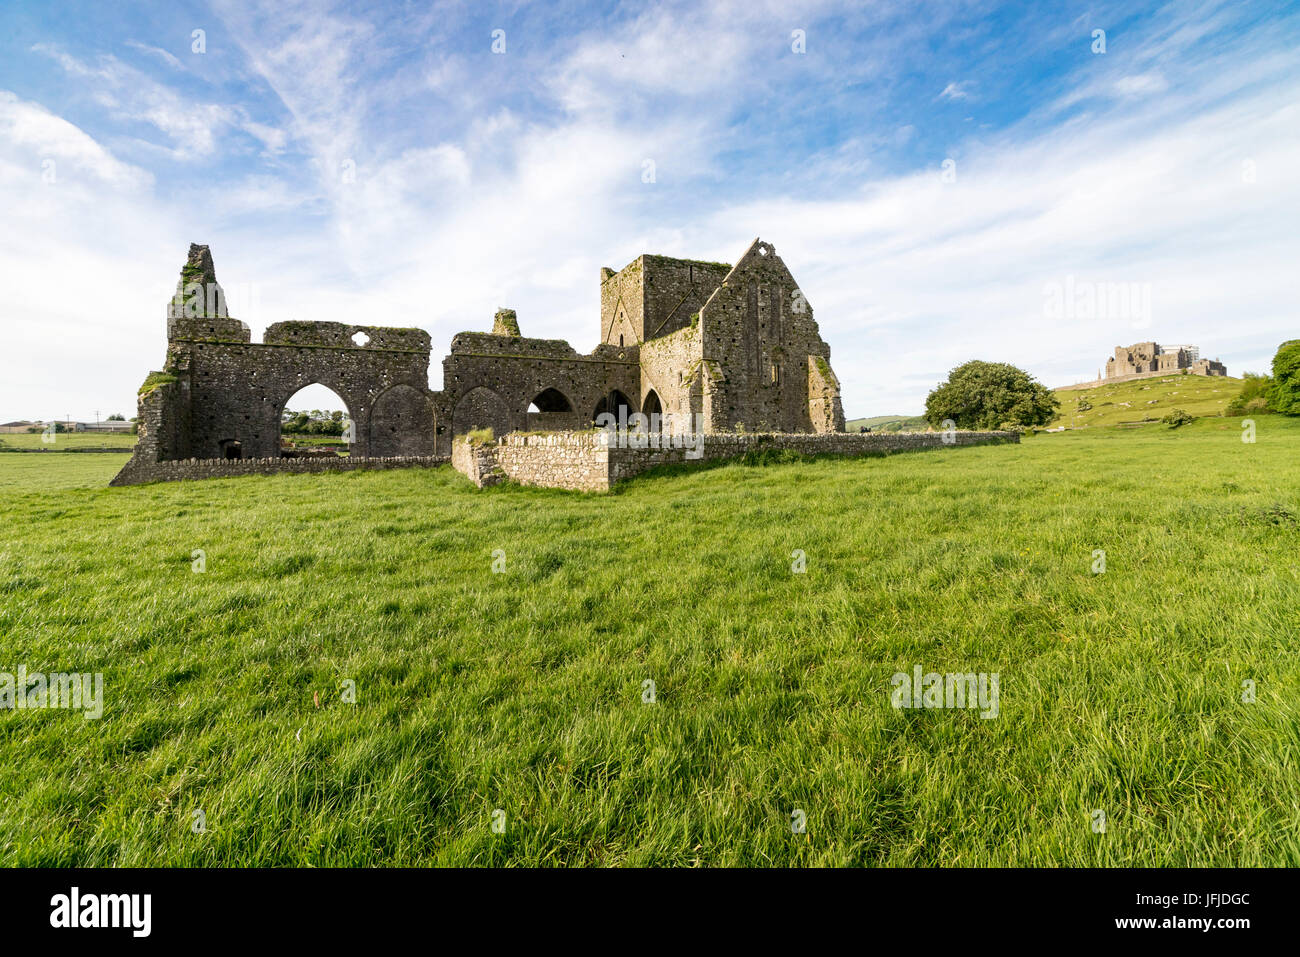 Hore Abbey and Rock of Cashel on the background, Cashel, Co, Tipperary, Munster, Ireland, Europe, - Stock Image